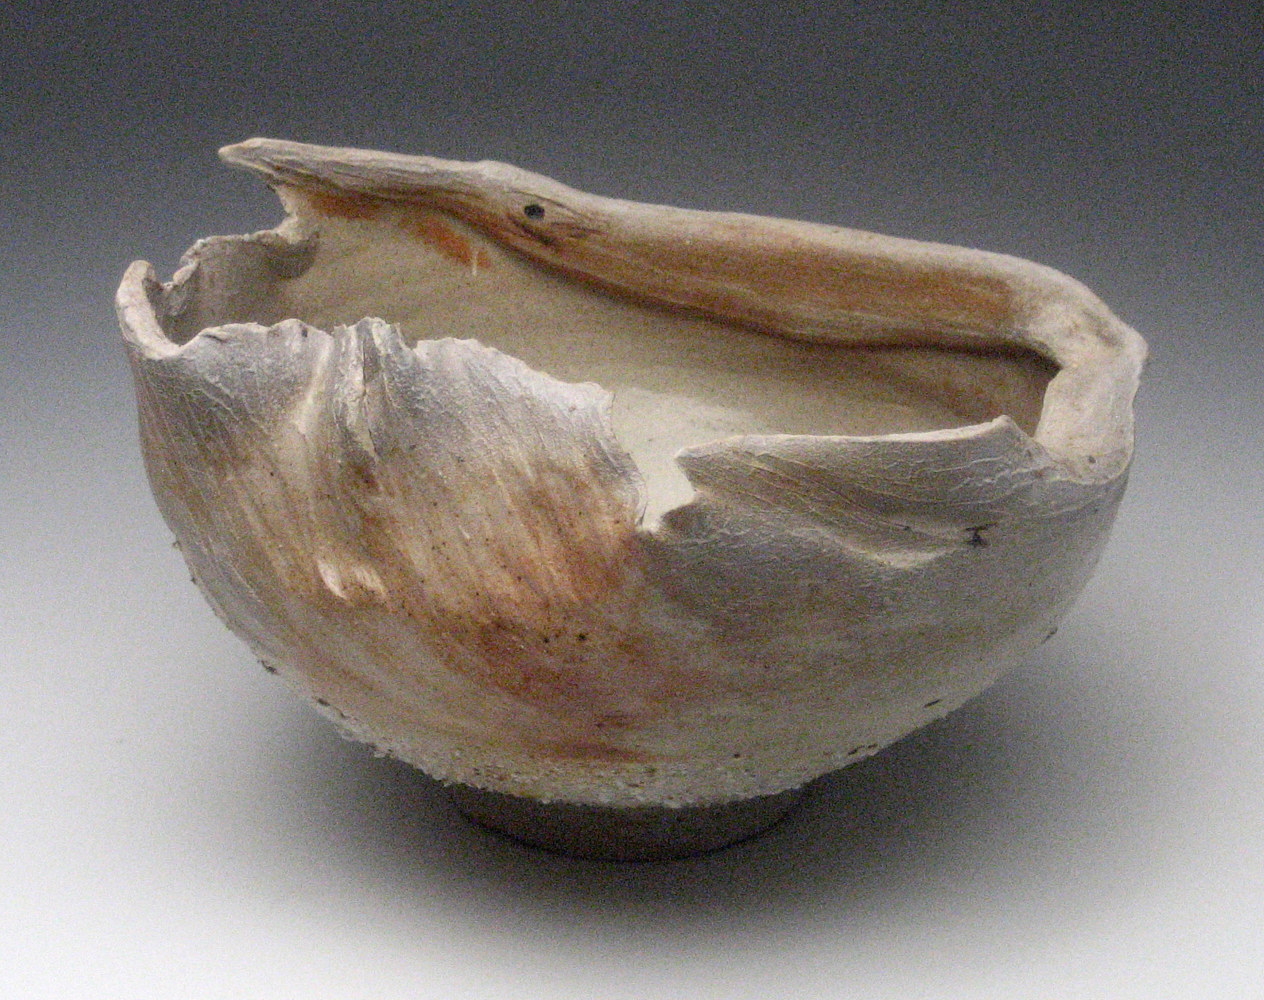 heron bowl 1 by Vicky Smith